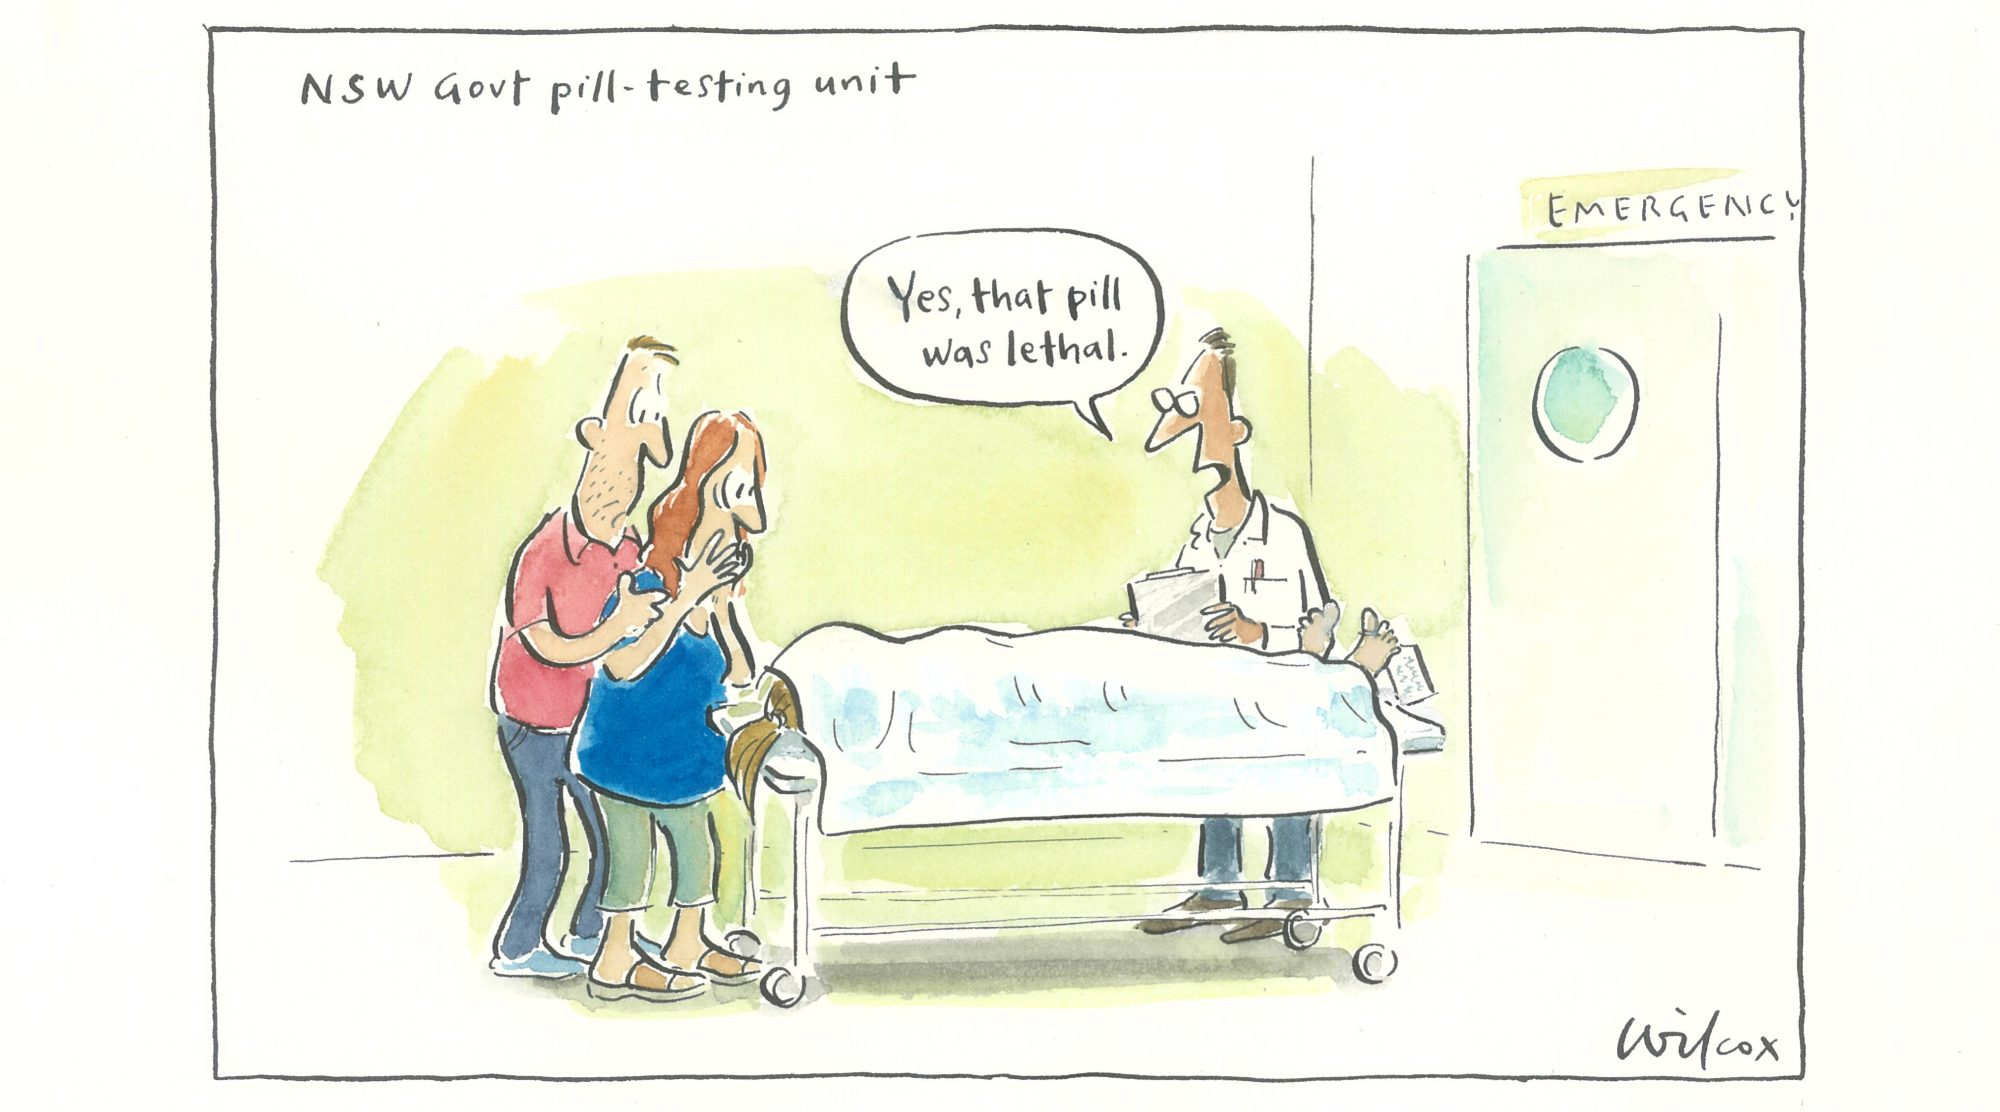 NSW Govt pill-testing unit